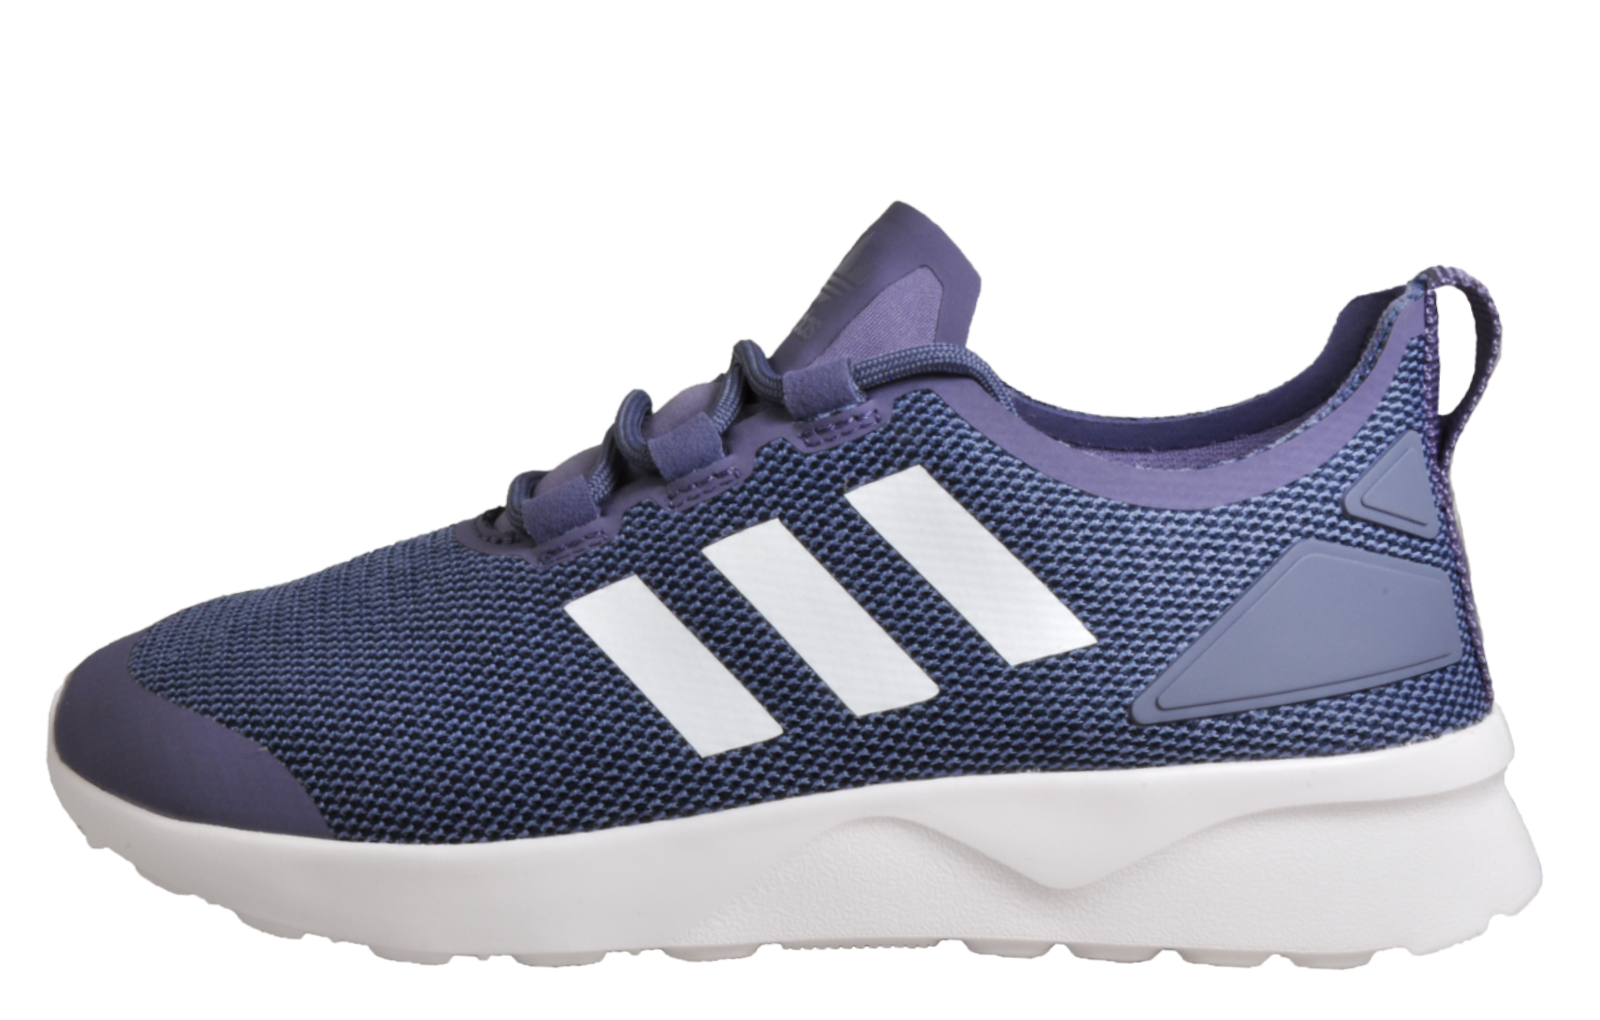 63282114b96be Adidas Originals ZX Flux ADV Verve Womens Casual Fitness Jogging Trainers  Purple